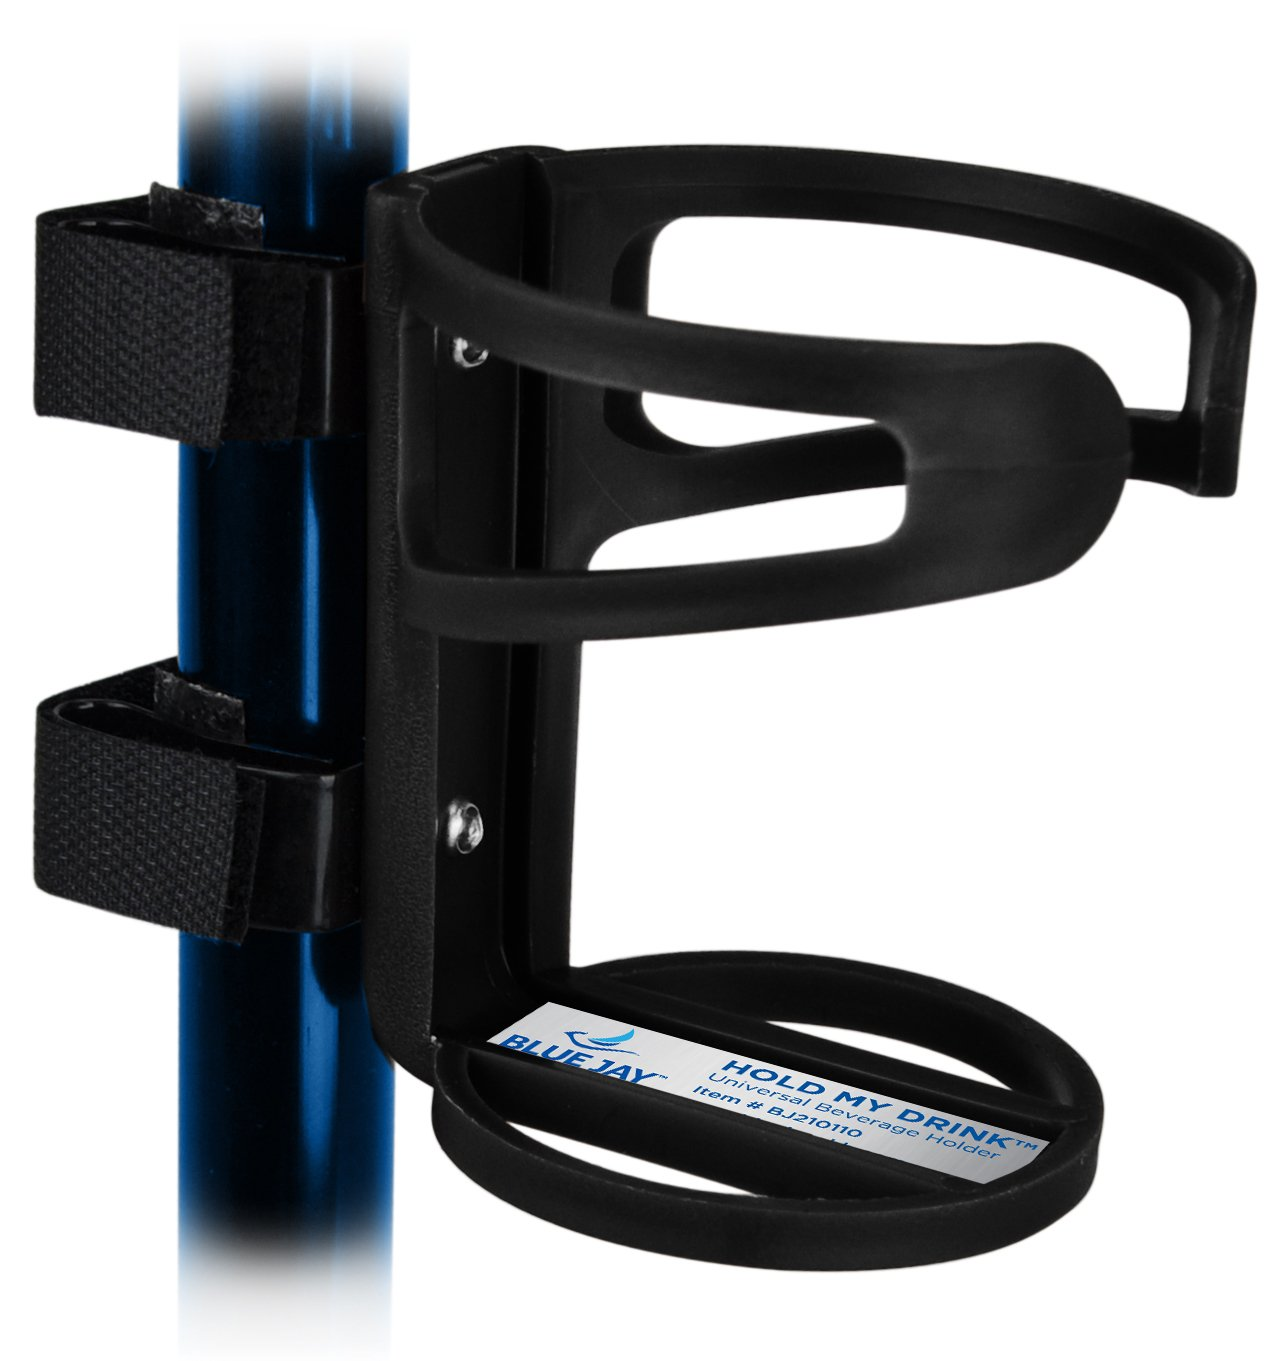 Blue Jay™ Hold My Drink Universal Beverage Holder, Use With All Your Mobil Equipment, Holds A Wide Selection Of Beverages Just Attach and Adjust, No Tools Required, Black, Non-Slip Strip, Flexible by Blue Jay An Elite Healthcare Brand (Image #1)